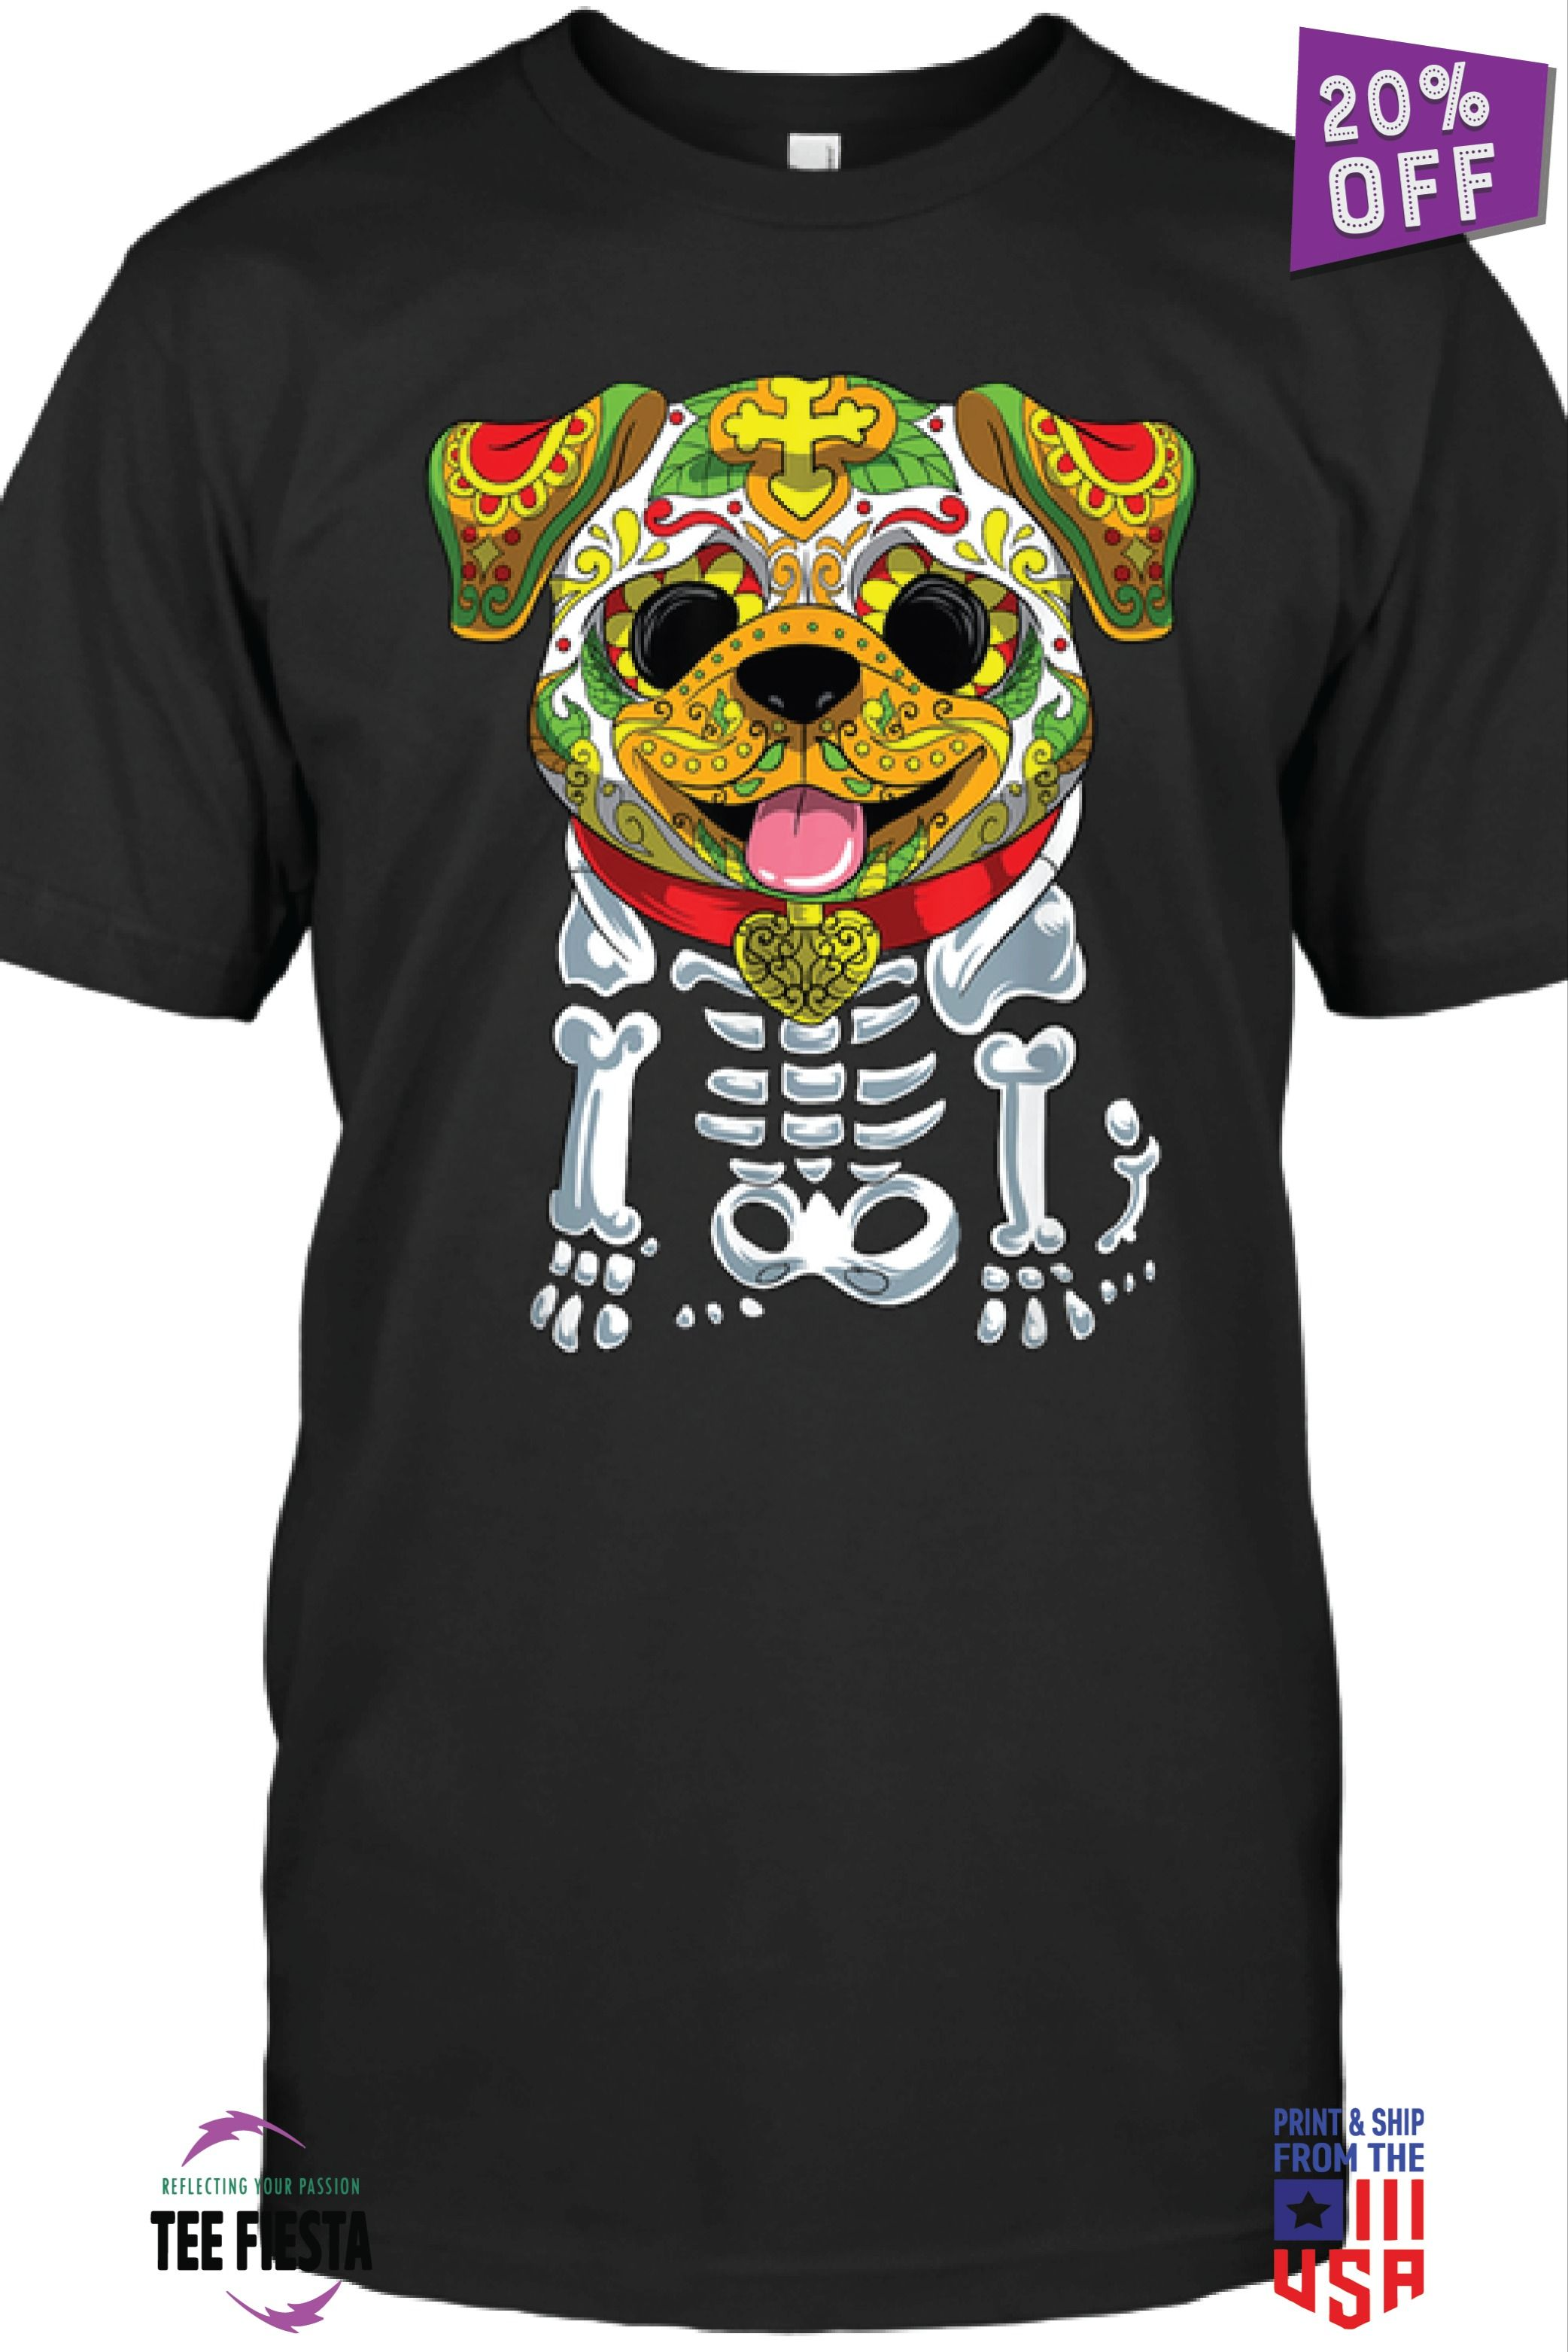 SUGAR SKULL BULLDOG FUNNY HALLOWEEN UNISEX SHIRTS | GET 20% OFF | LIMITED TIME OFFER #funnybulldog